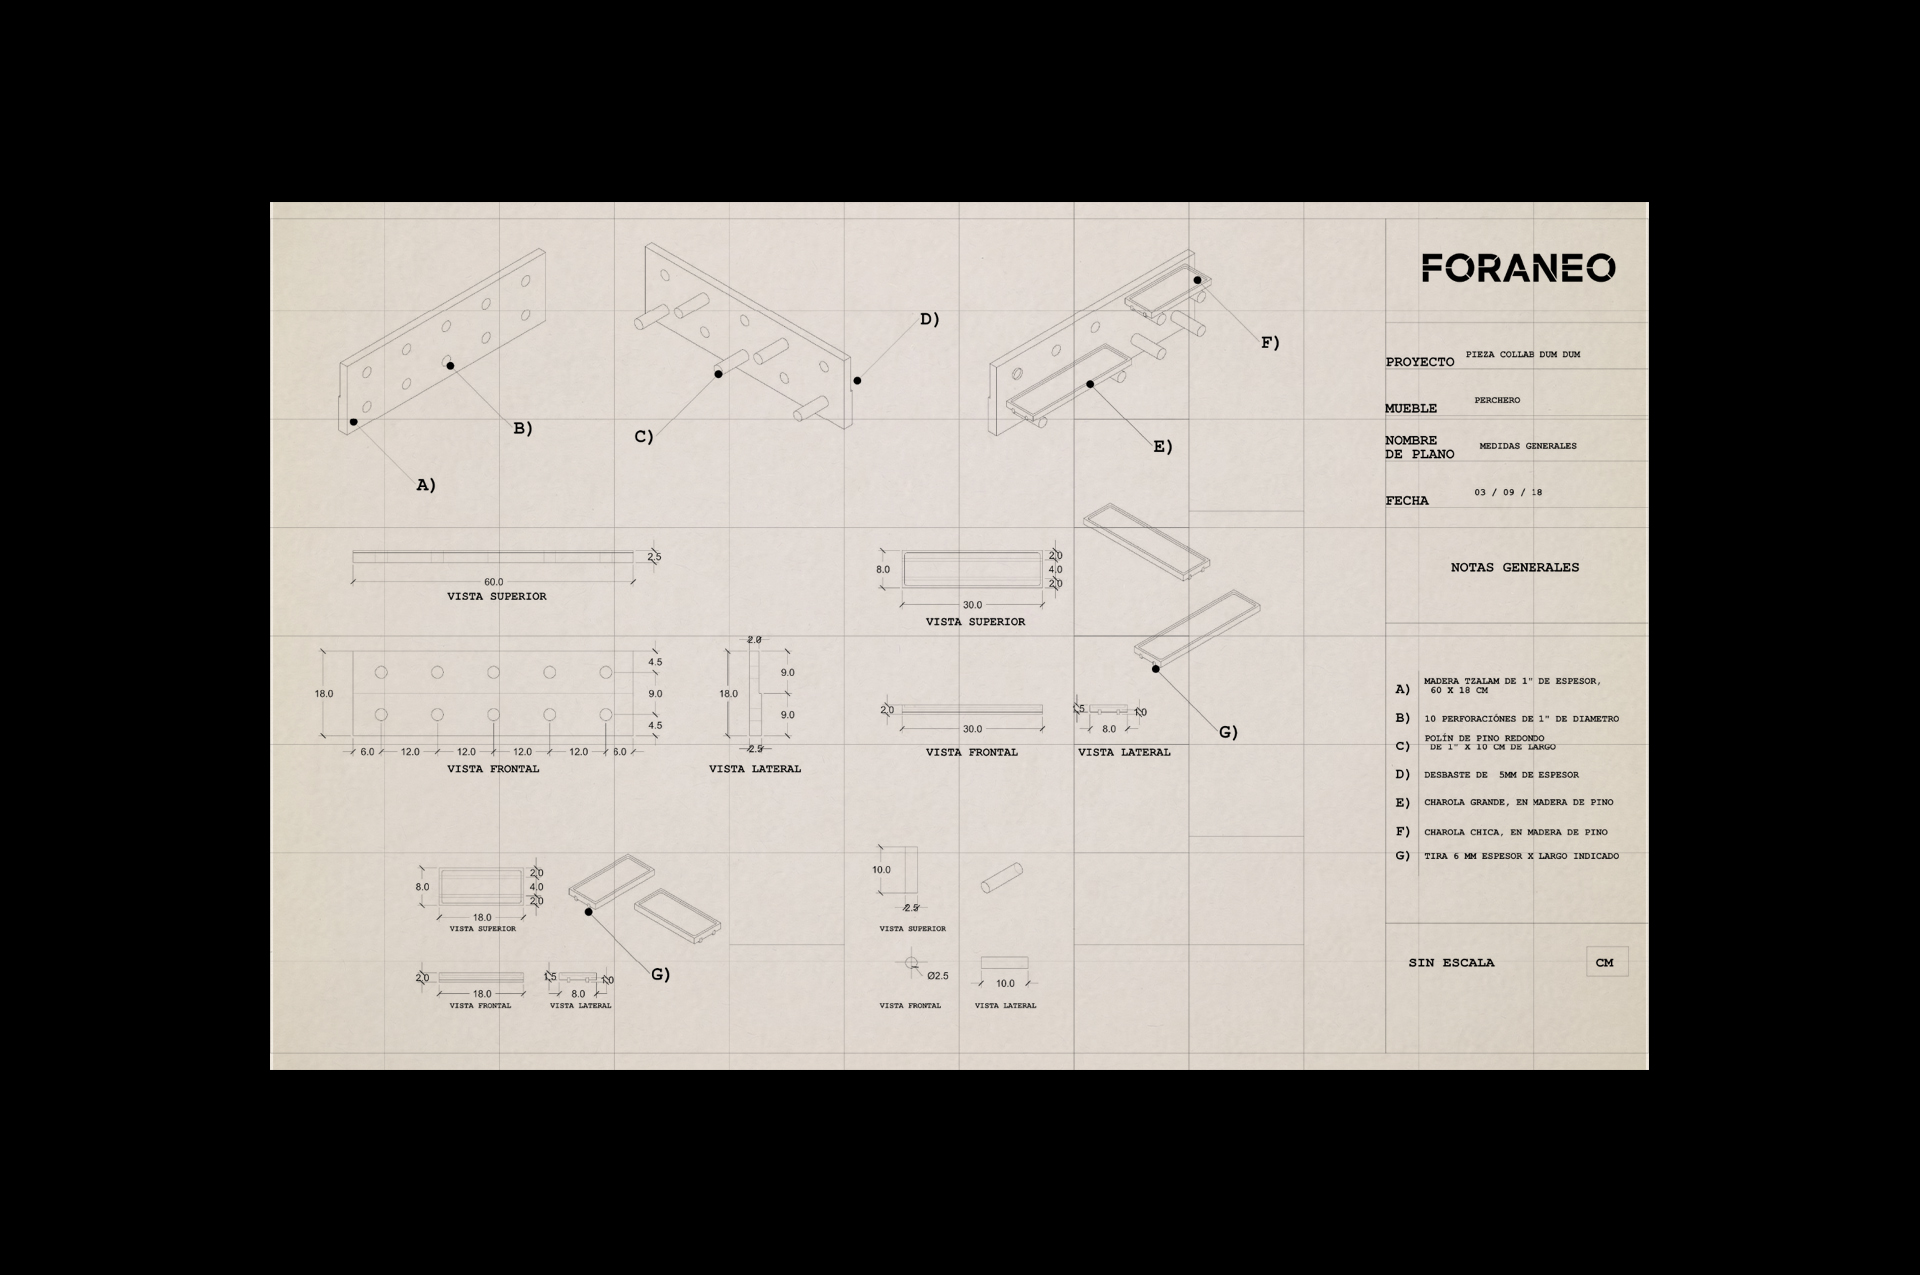 Foraneo - Fonts In Use